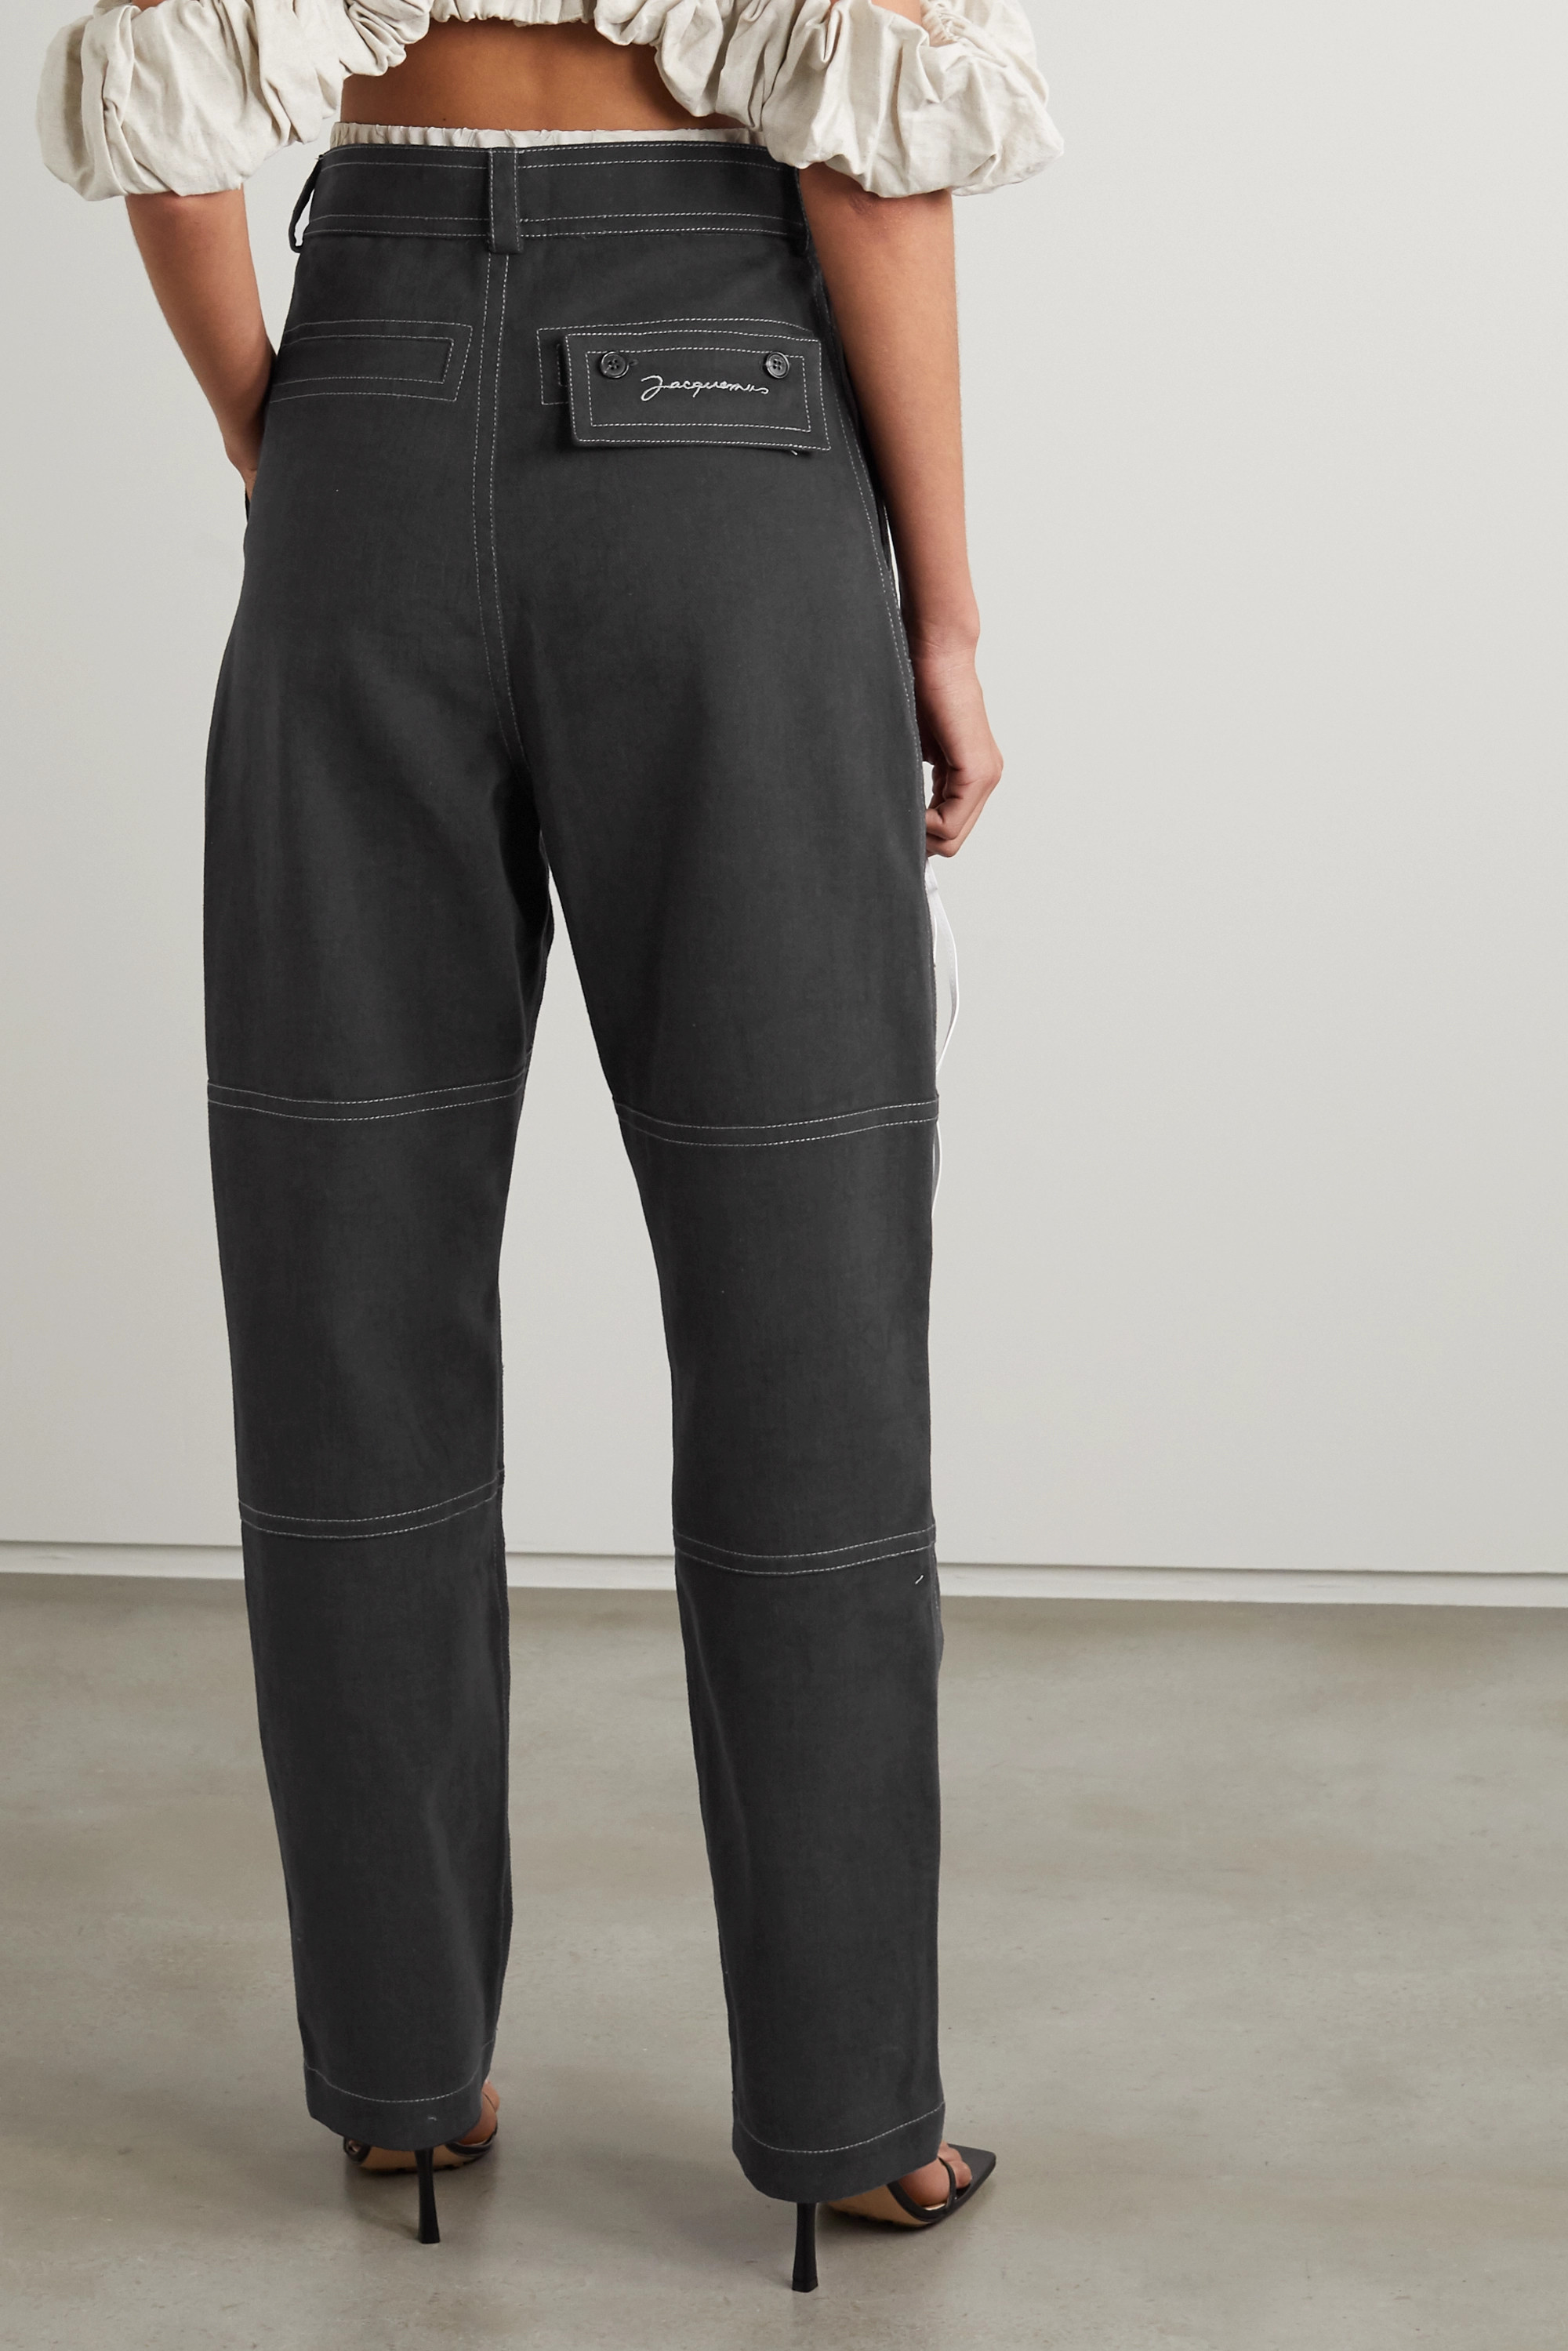 JACQUEMUS Felix layered high-rise tapered jeans